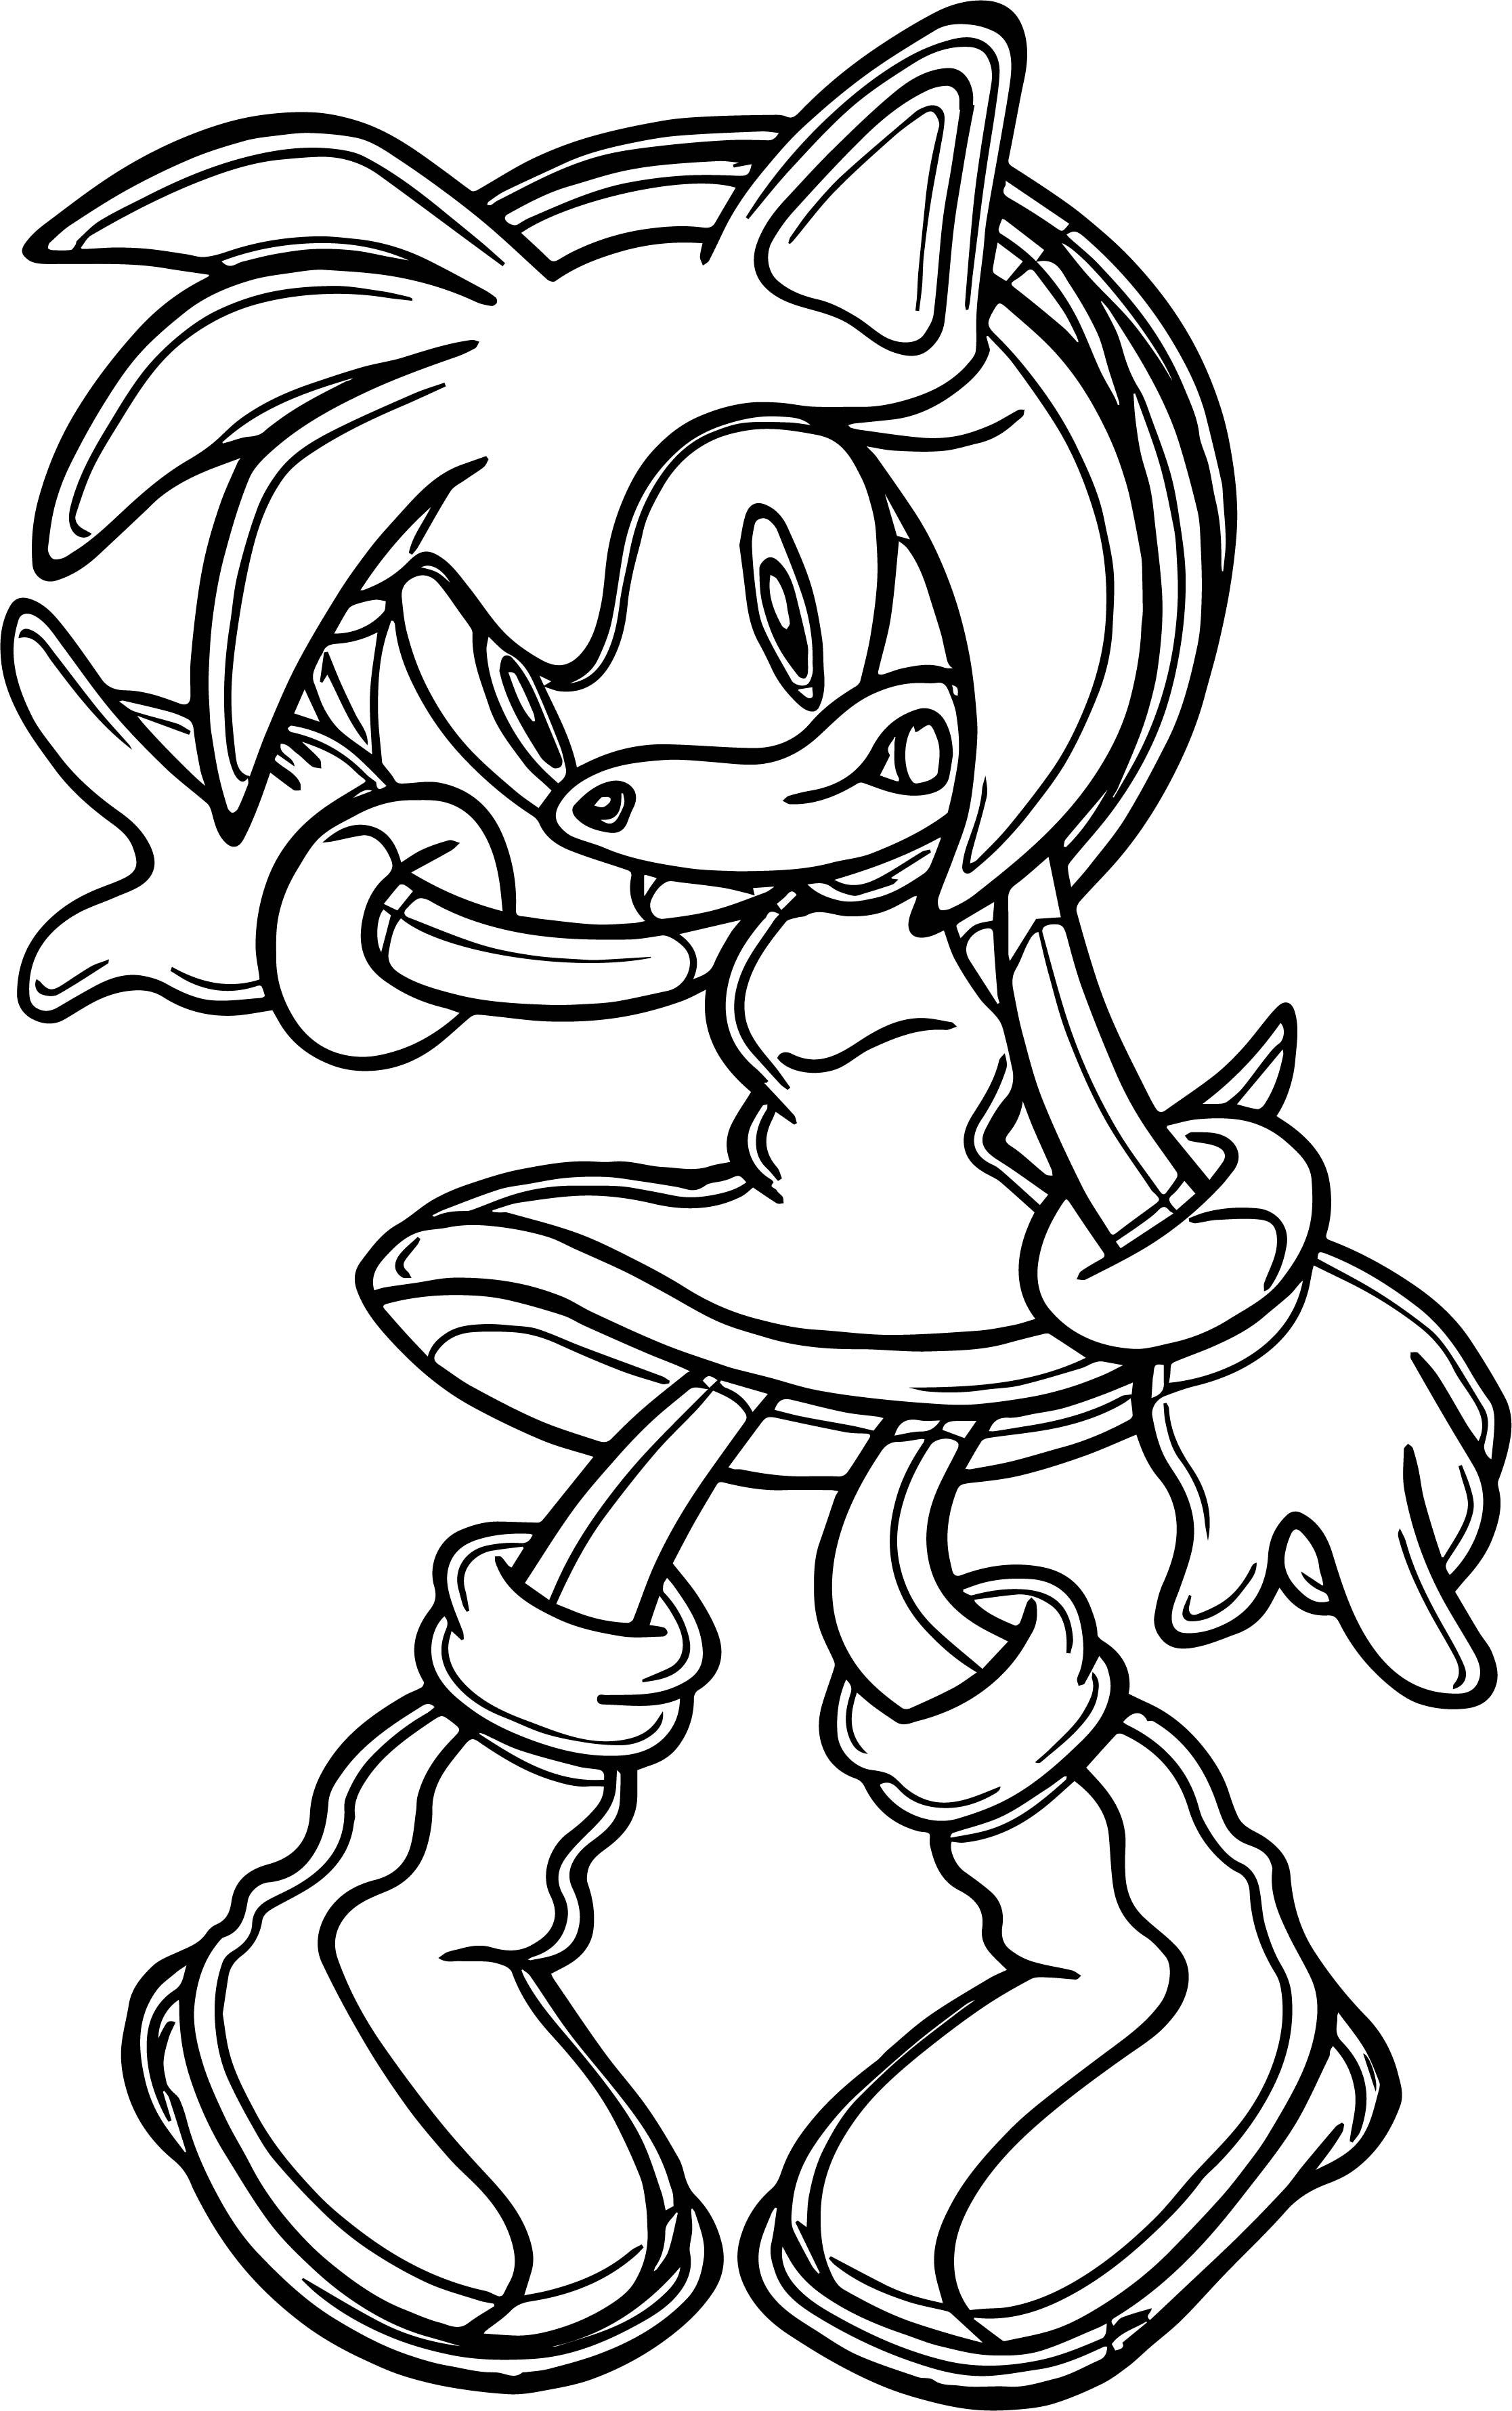 amy rose coloring pages perfect amy rose coloring pages wecoloringpagecom pages rose coloring amy